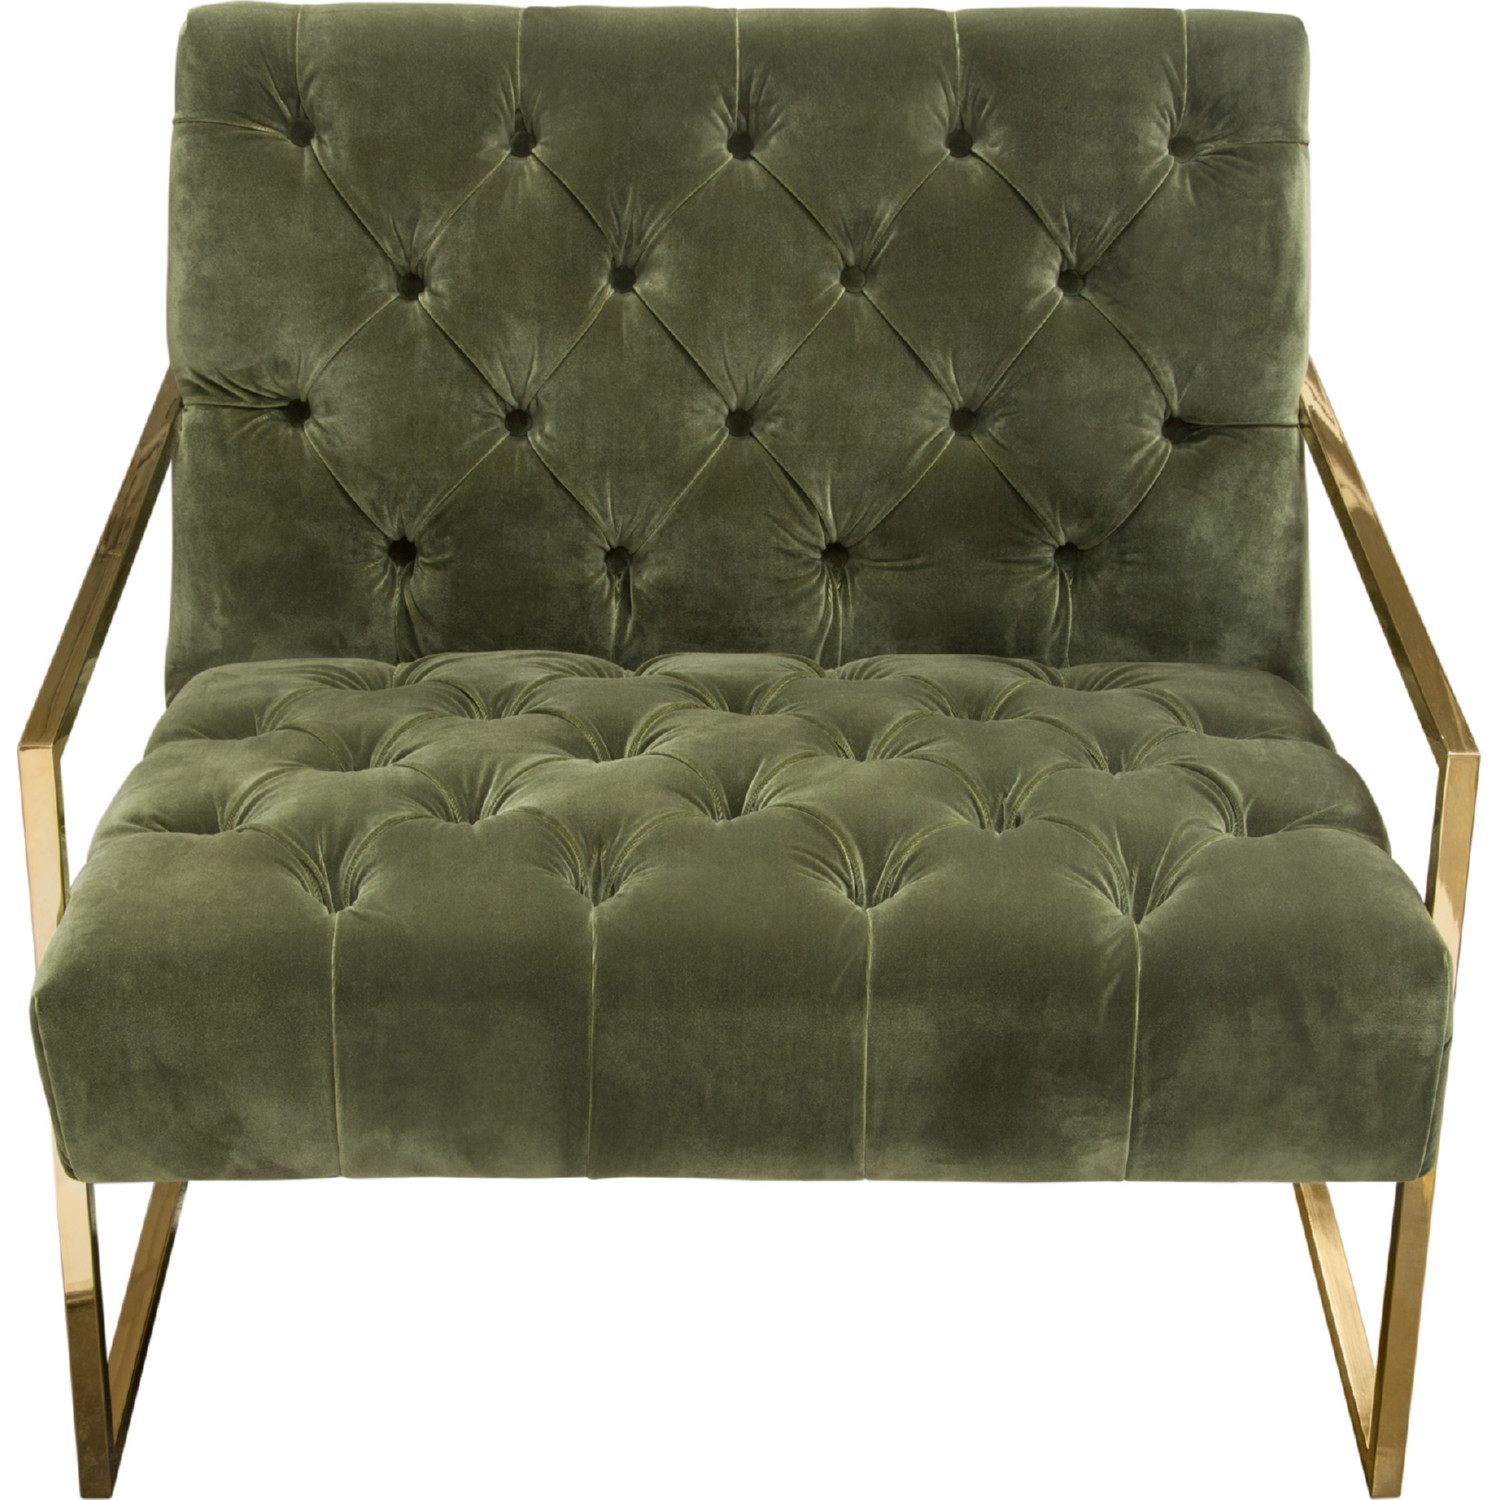 Diamond Sofa Luxe Accent Chair In Tufted Olive Green Velvet On Polished  Gold Stainless